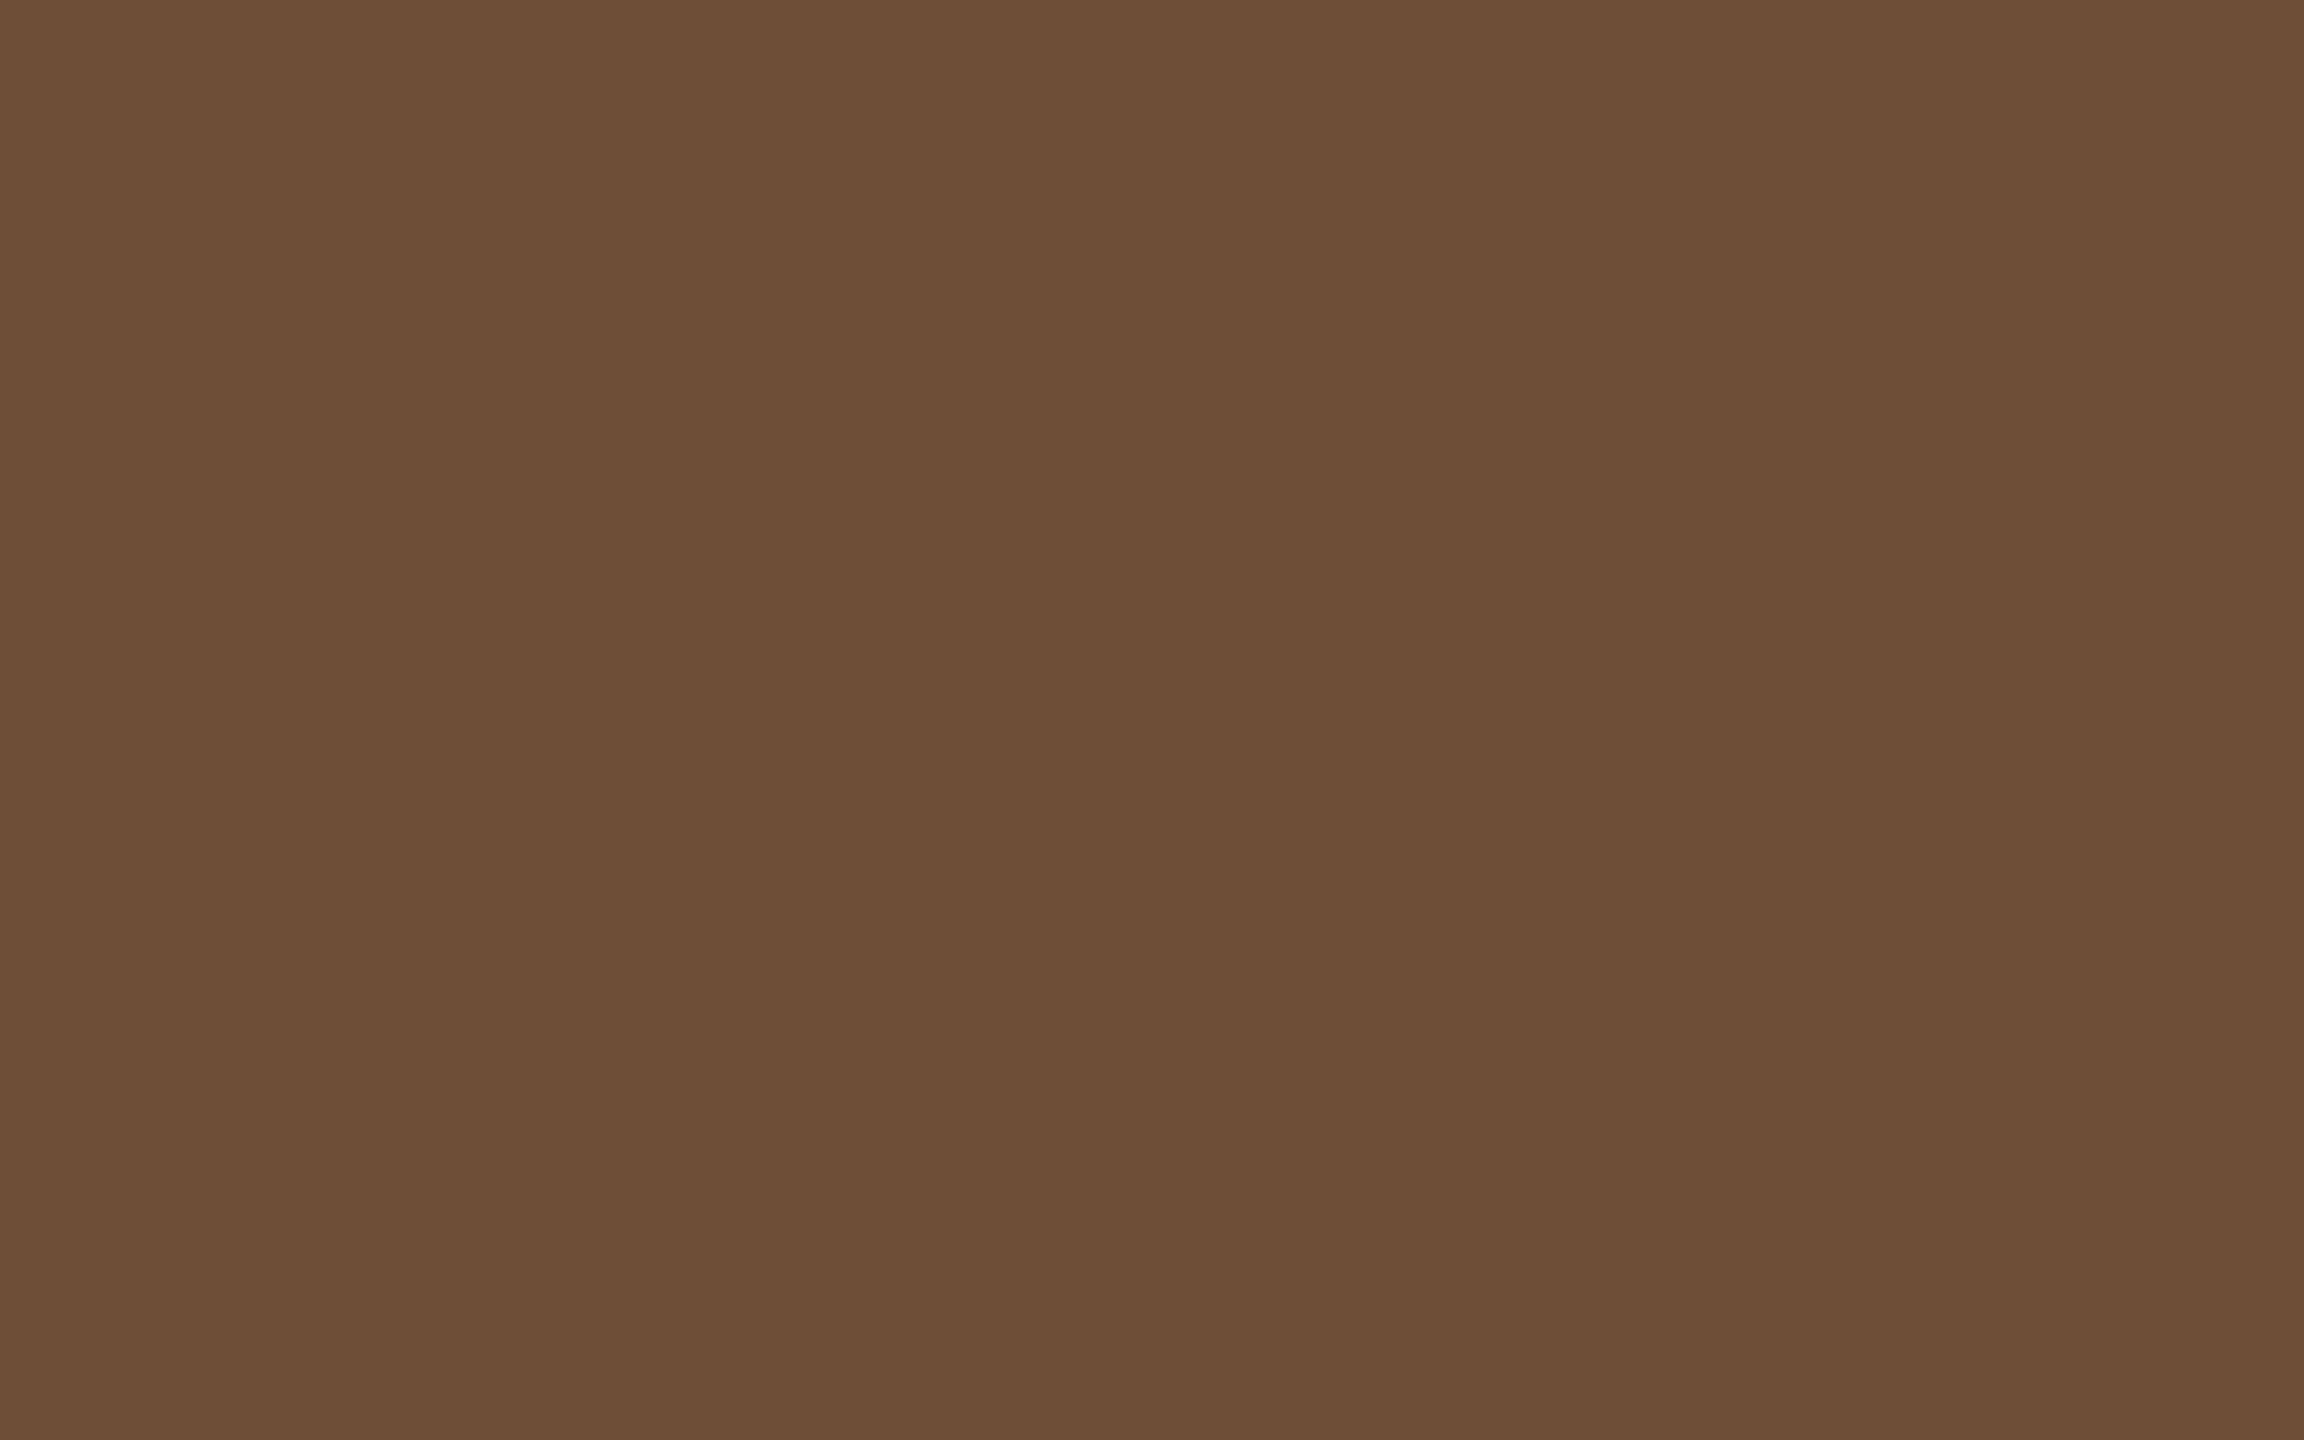 2304x1440 Coffee Solid Color Background